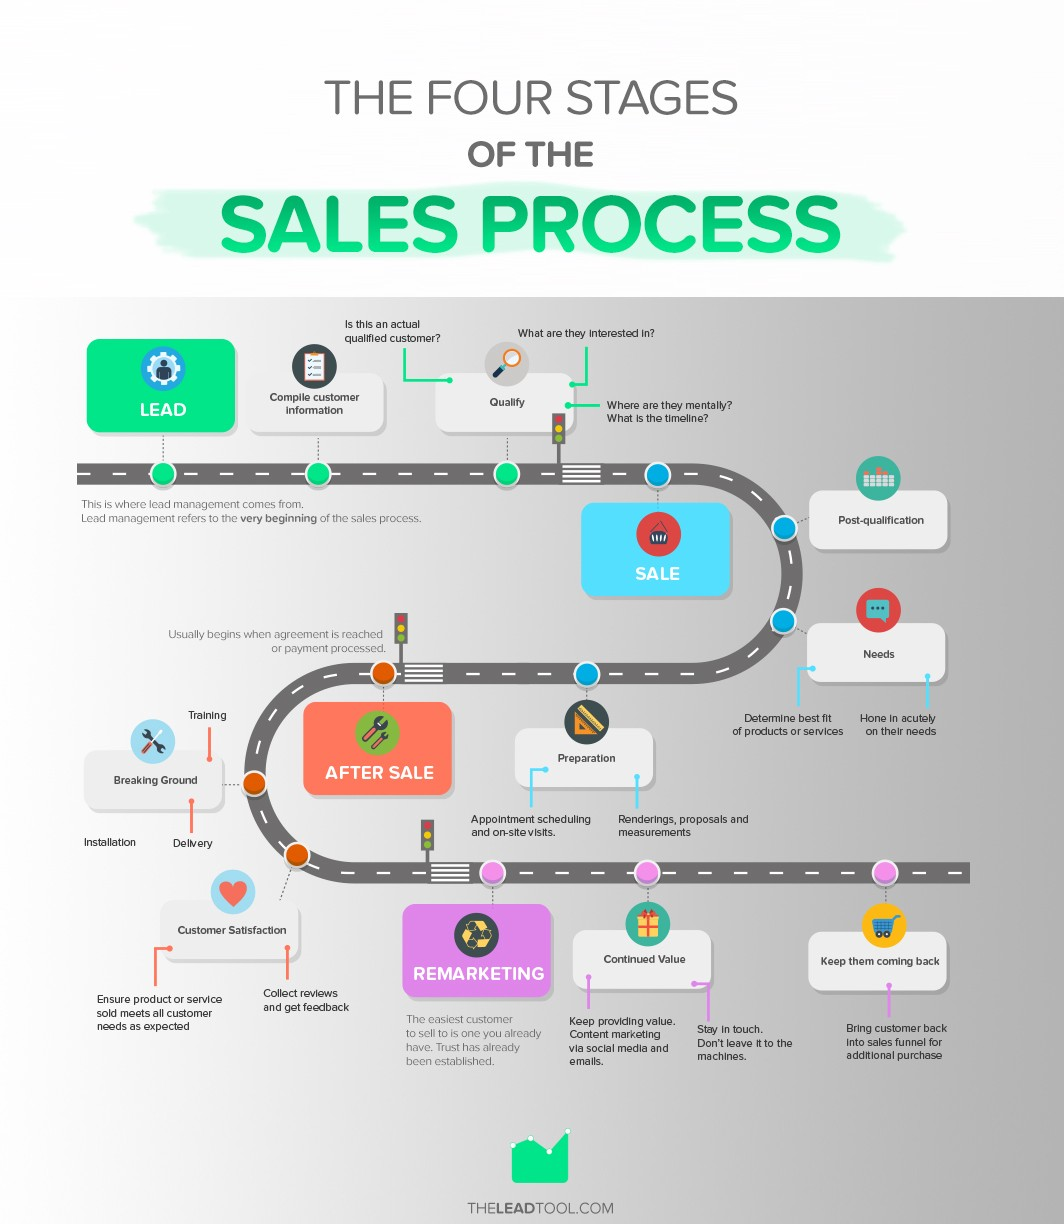 The sales process really breaks down into four stages. Lead management, sale management, after sale and remarketing.